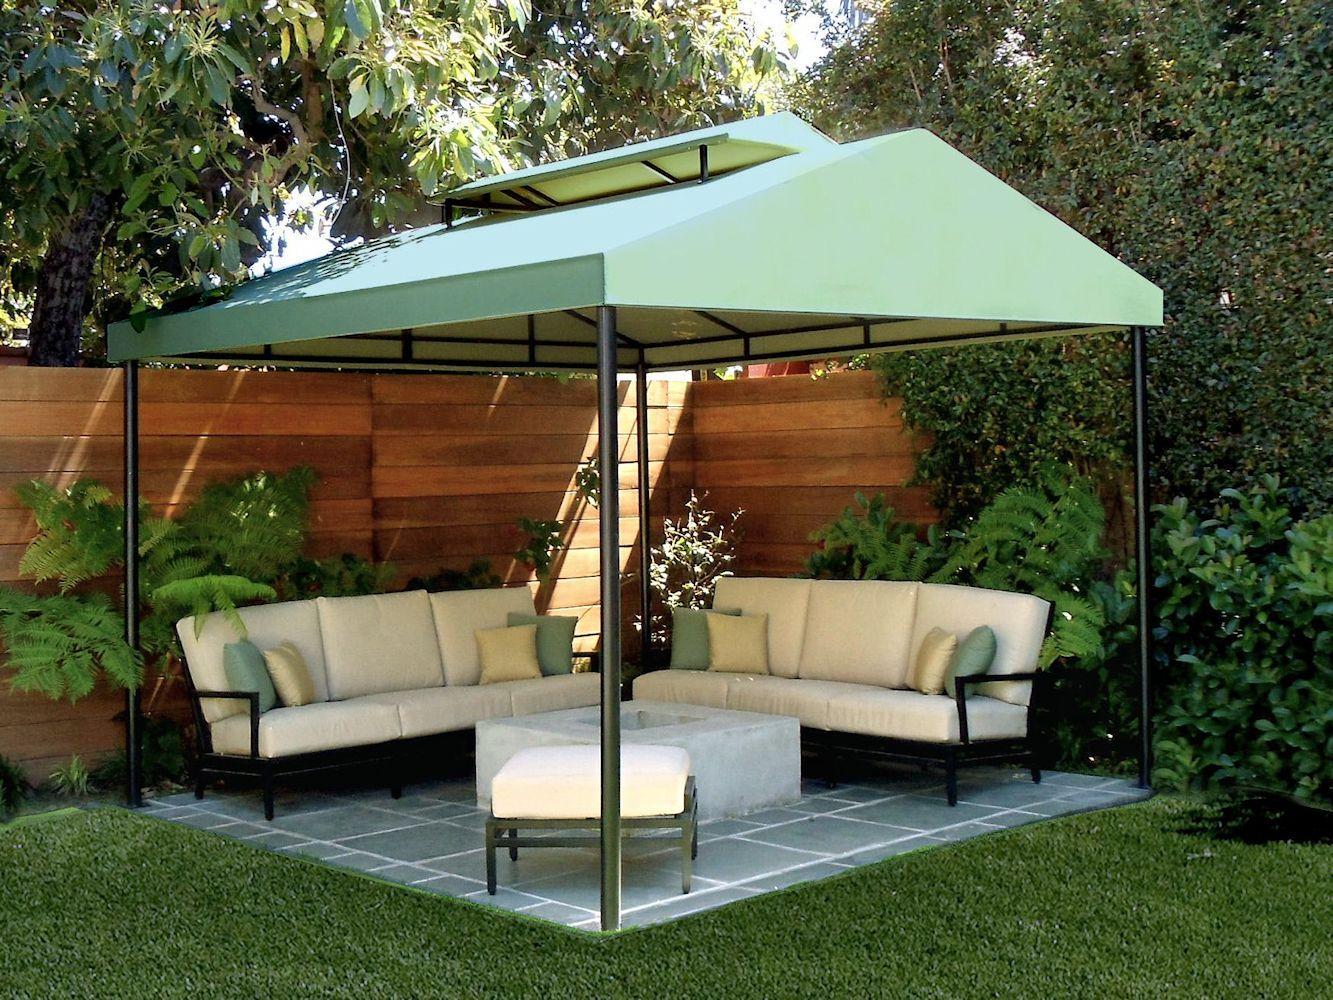 Custom Pool Cabanas By Superior Awning Let The Sun Shine Patio Residential Awnings Patio Projects